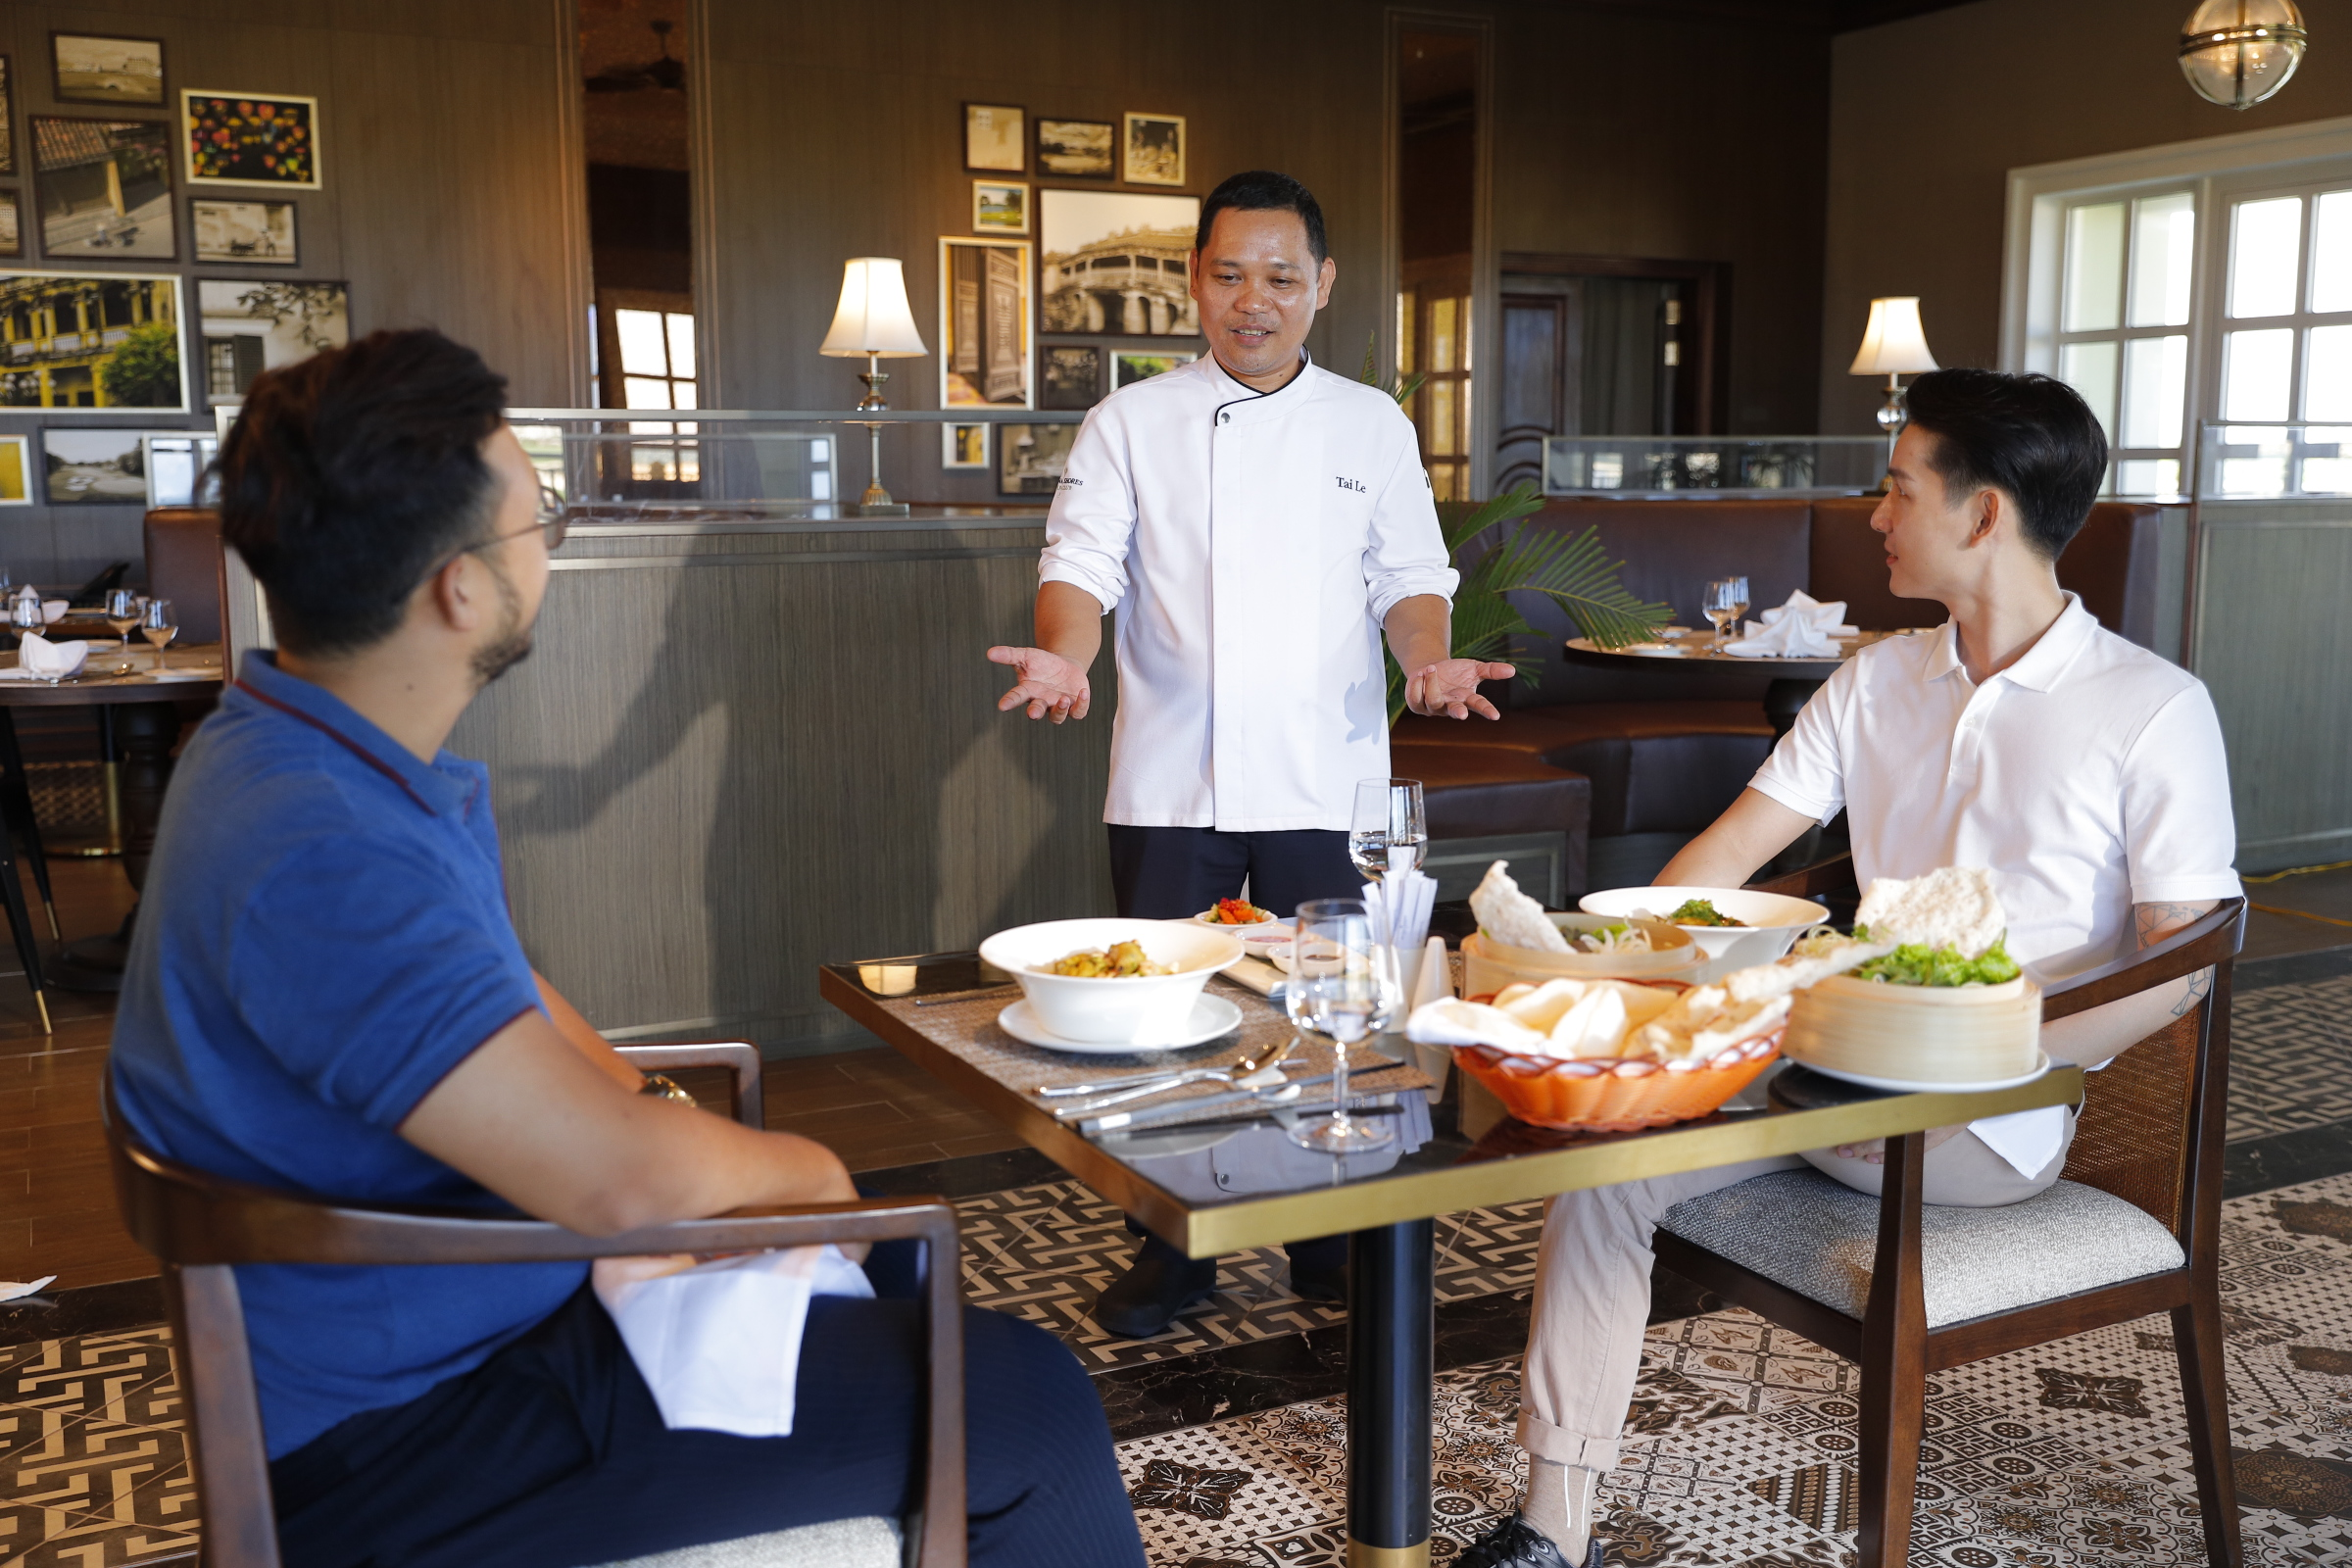 Resort staff tell stories about culture, cuisine of Vietnam's Quang Nam Province